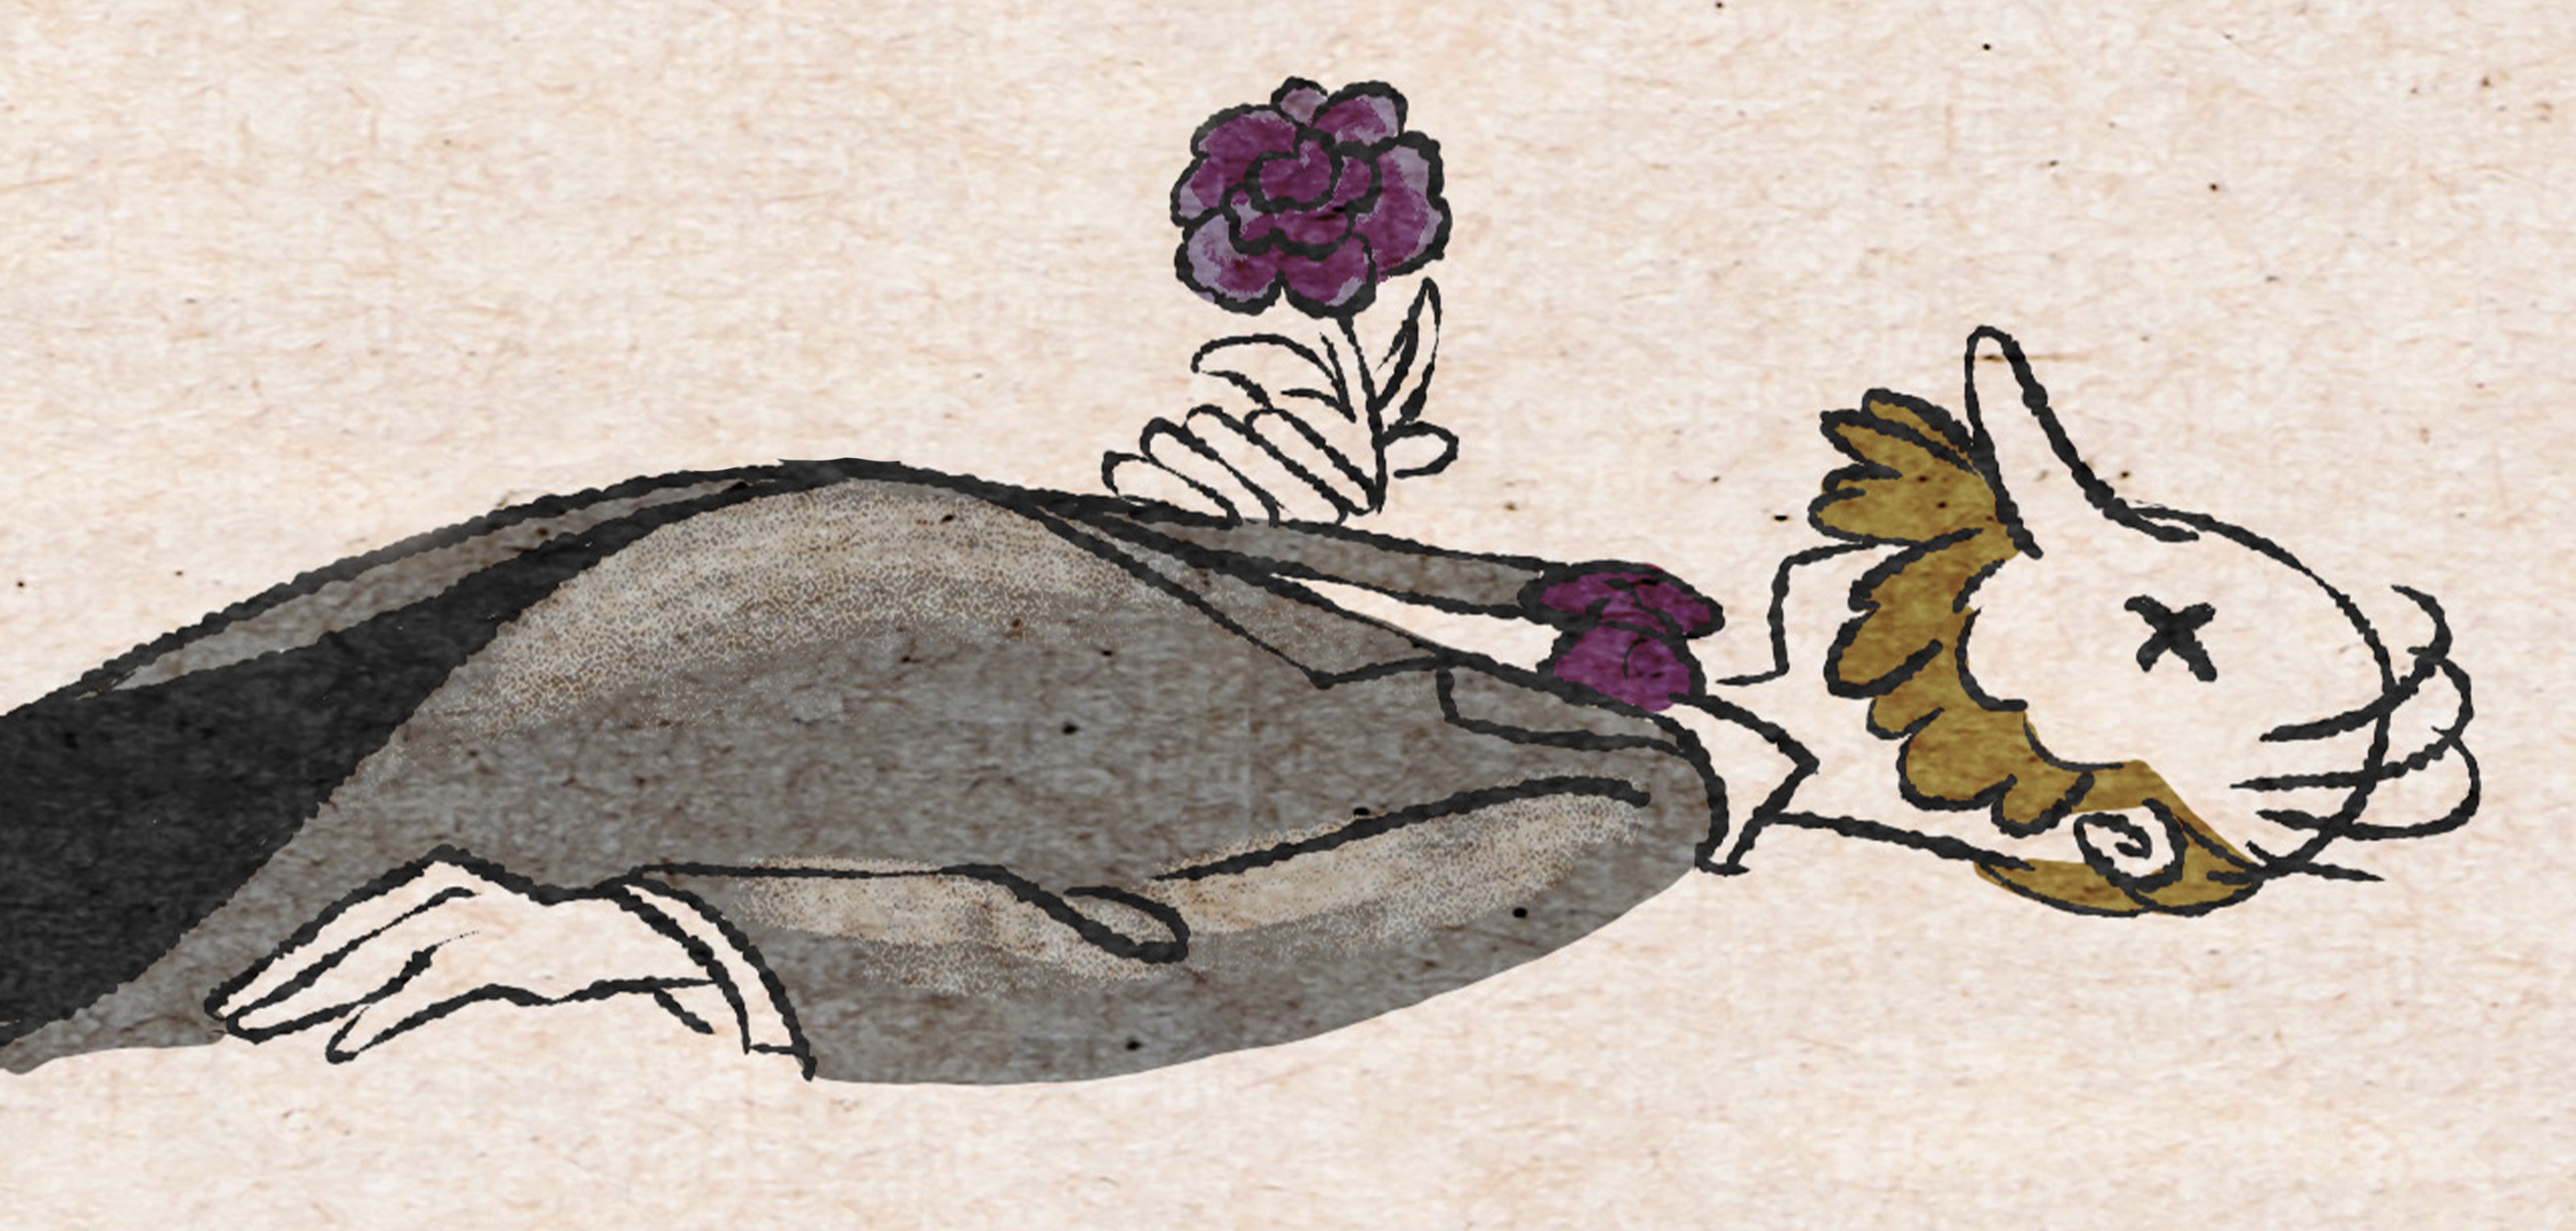 An illustrated depiction of a corpse